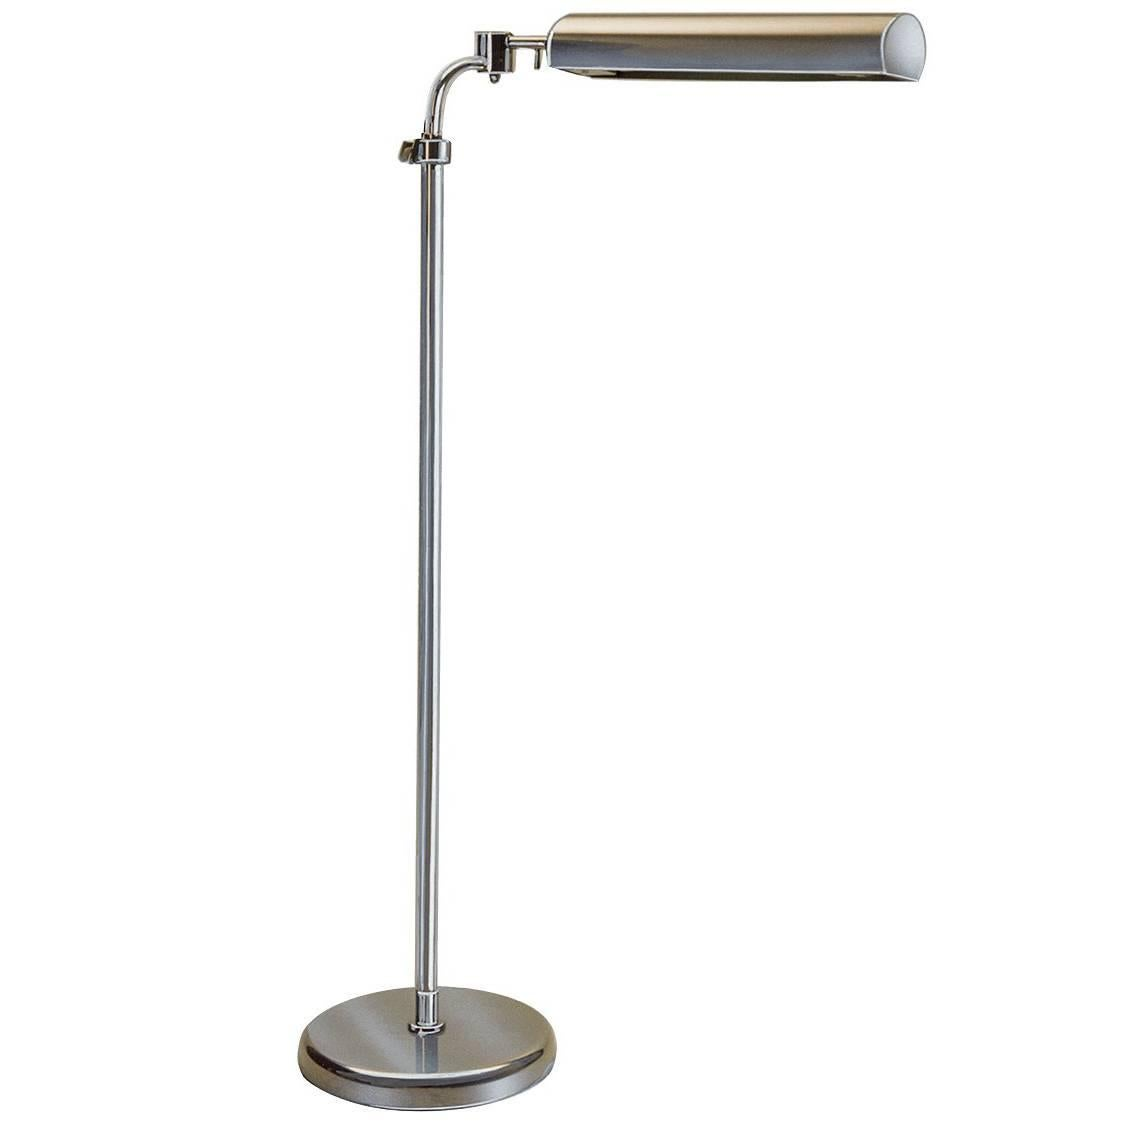 Deutsches Bauhaus Art Deco Sviveling Brass Floor Lamp Edition   Office 1  For Sale